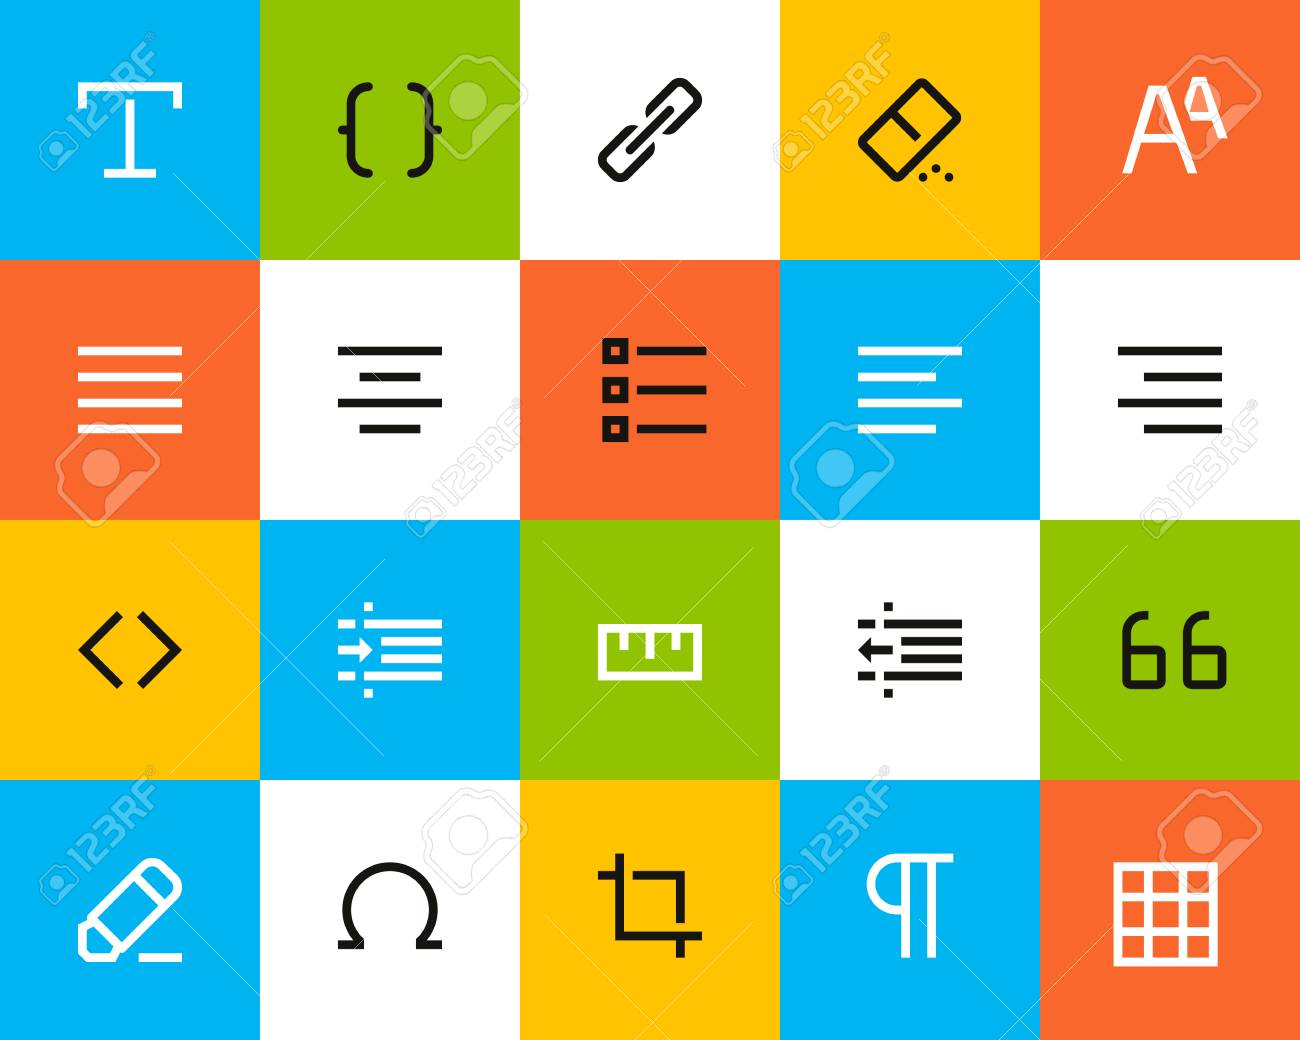 formatting and editing icons flat series royalty free cliparts